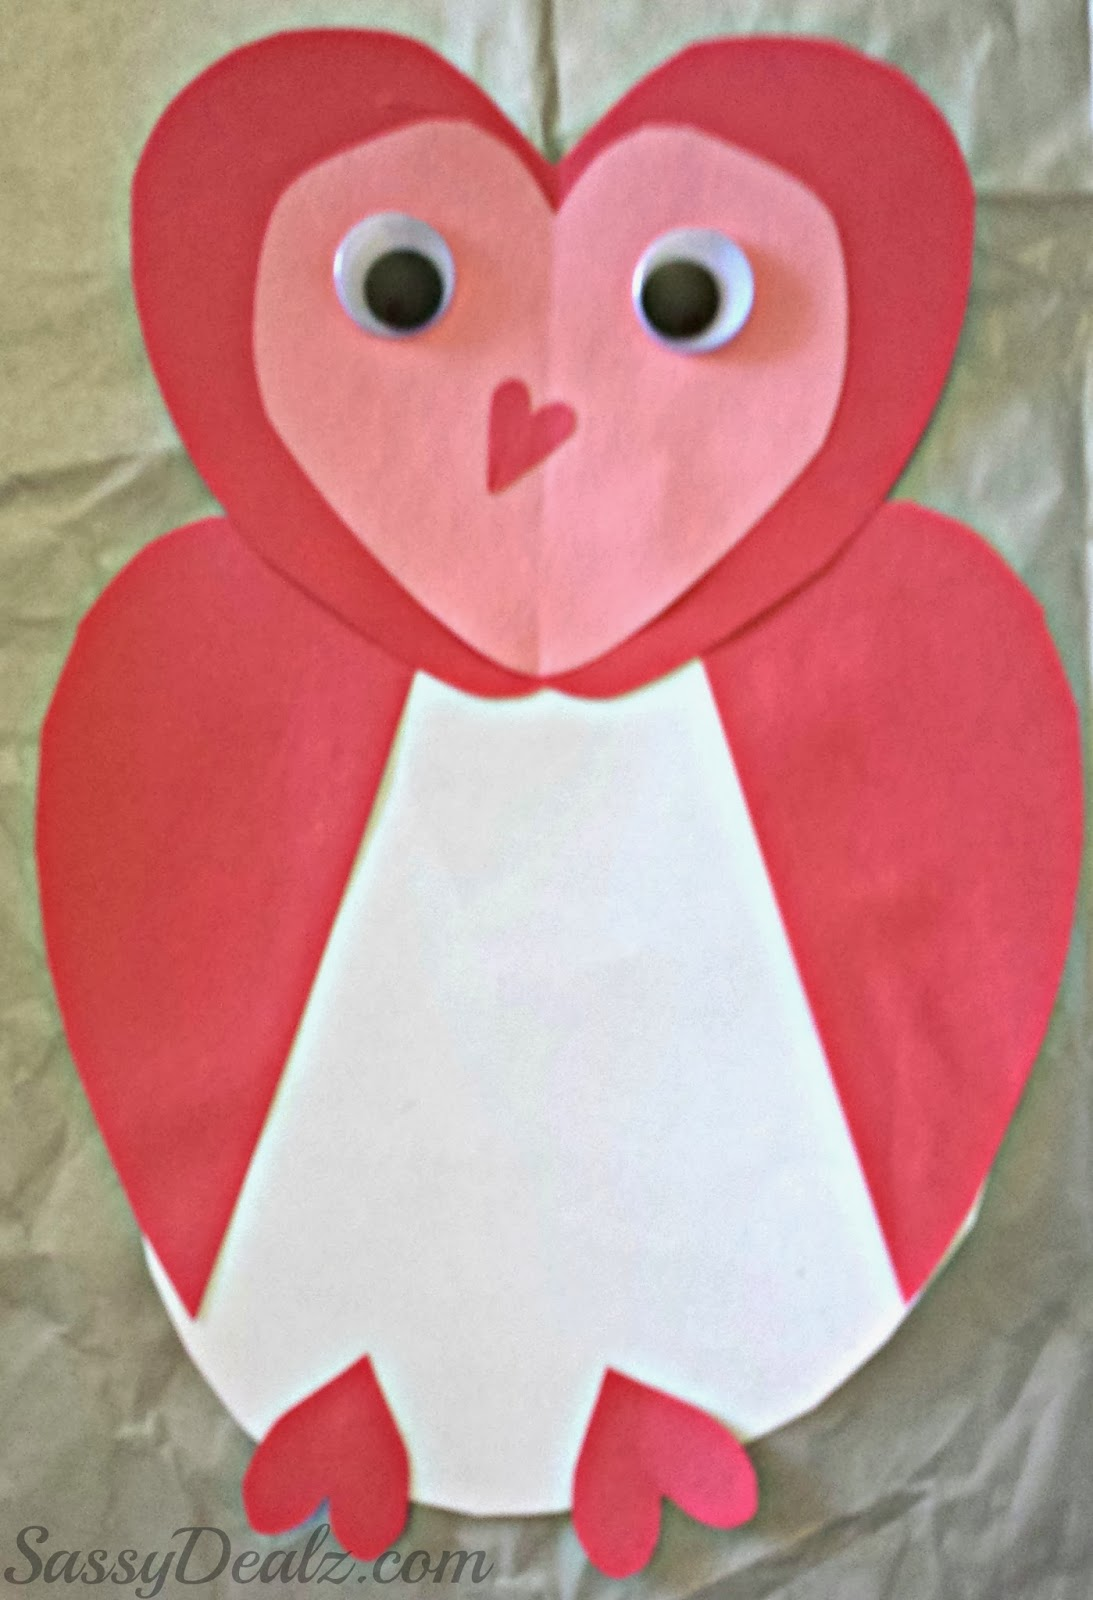 Owl Valentines Day Card Idea For Kids Crafty Morning – Valentine Cards Ideas for Preschoolers